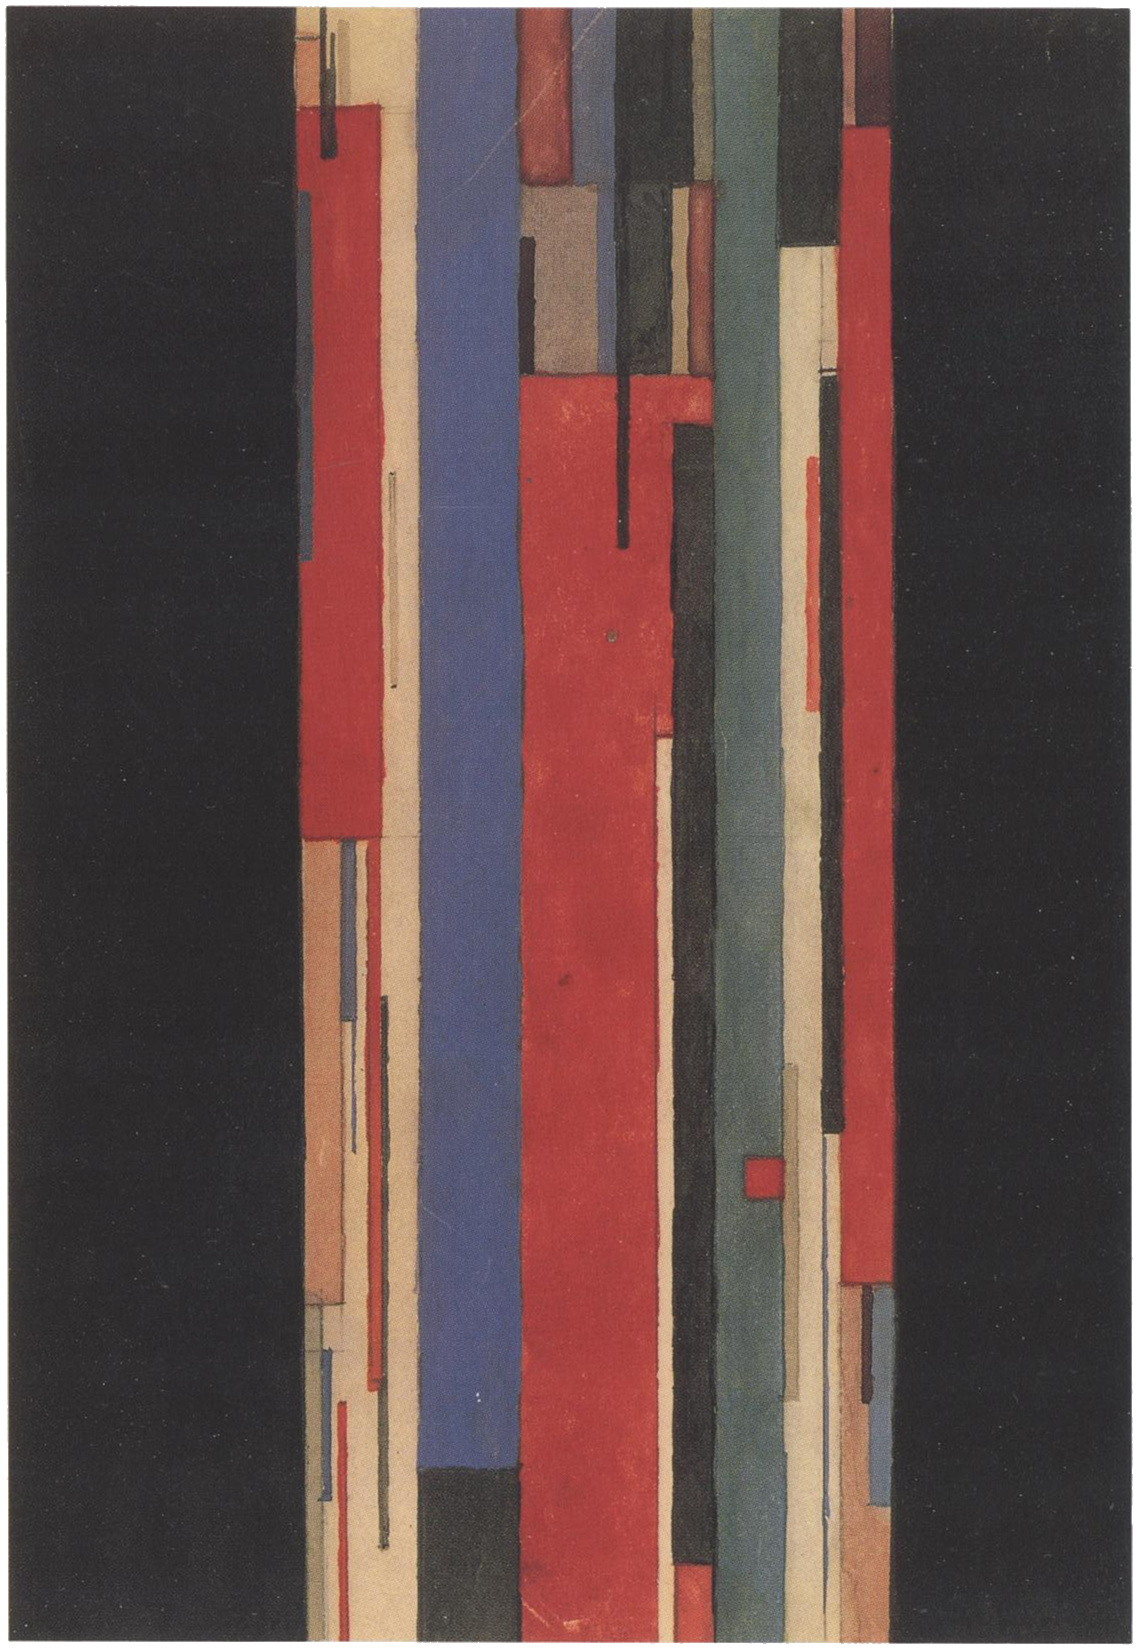 Il'ia Chashnik, color lines in vertical motion, 1923-1925, Watercolor